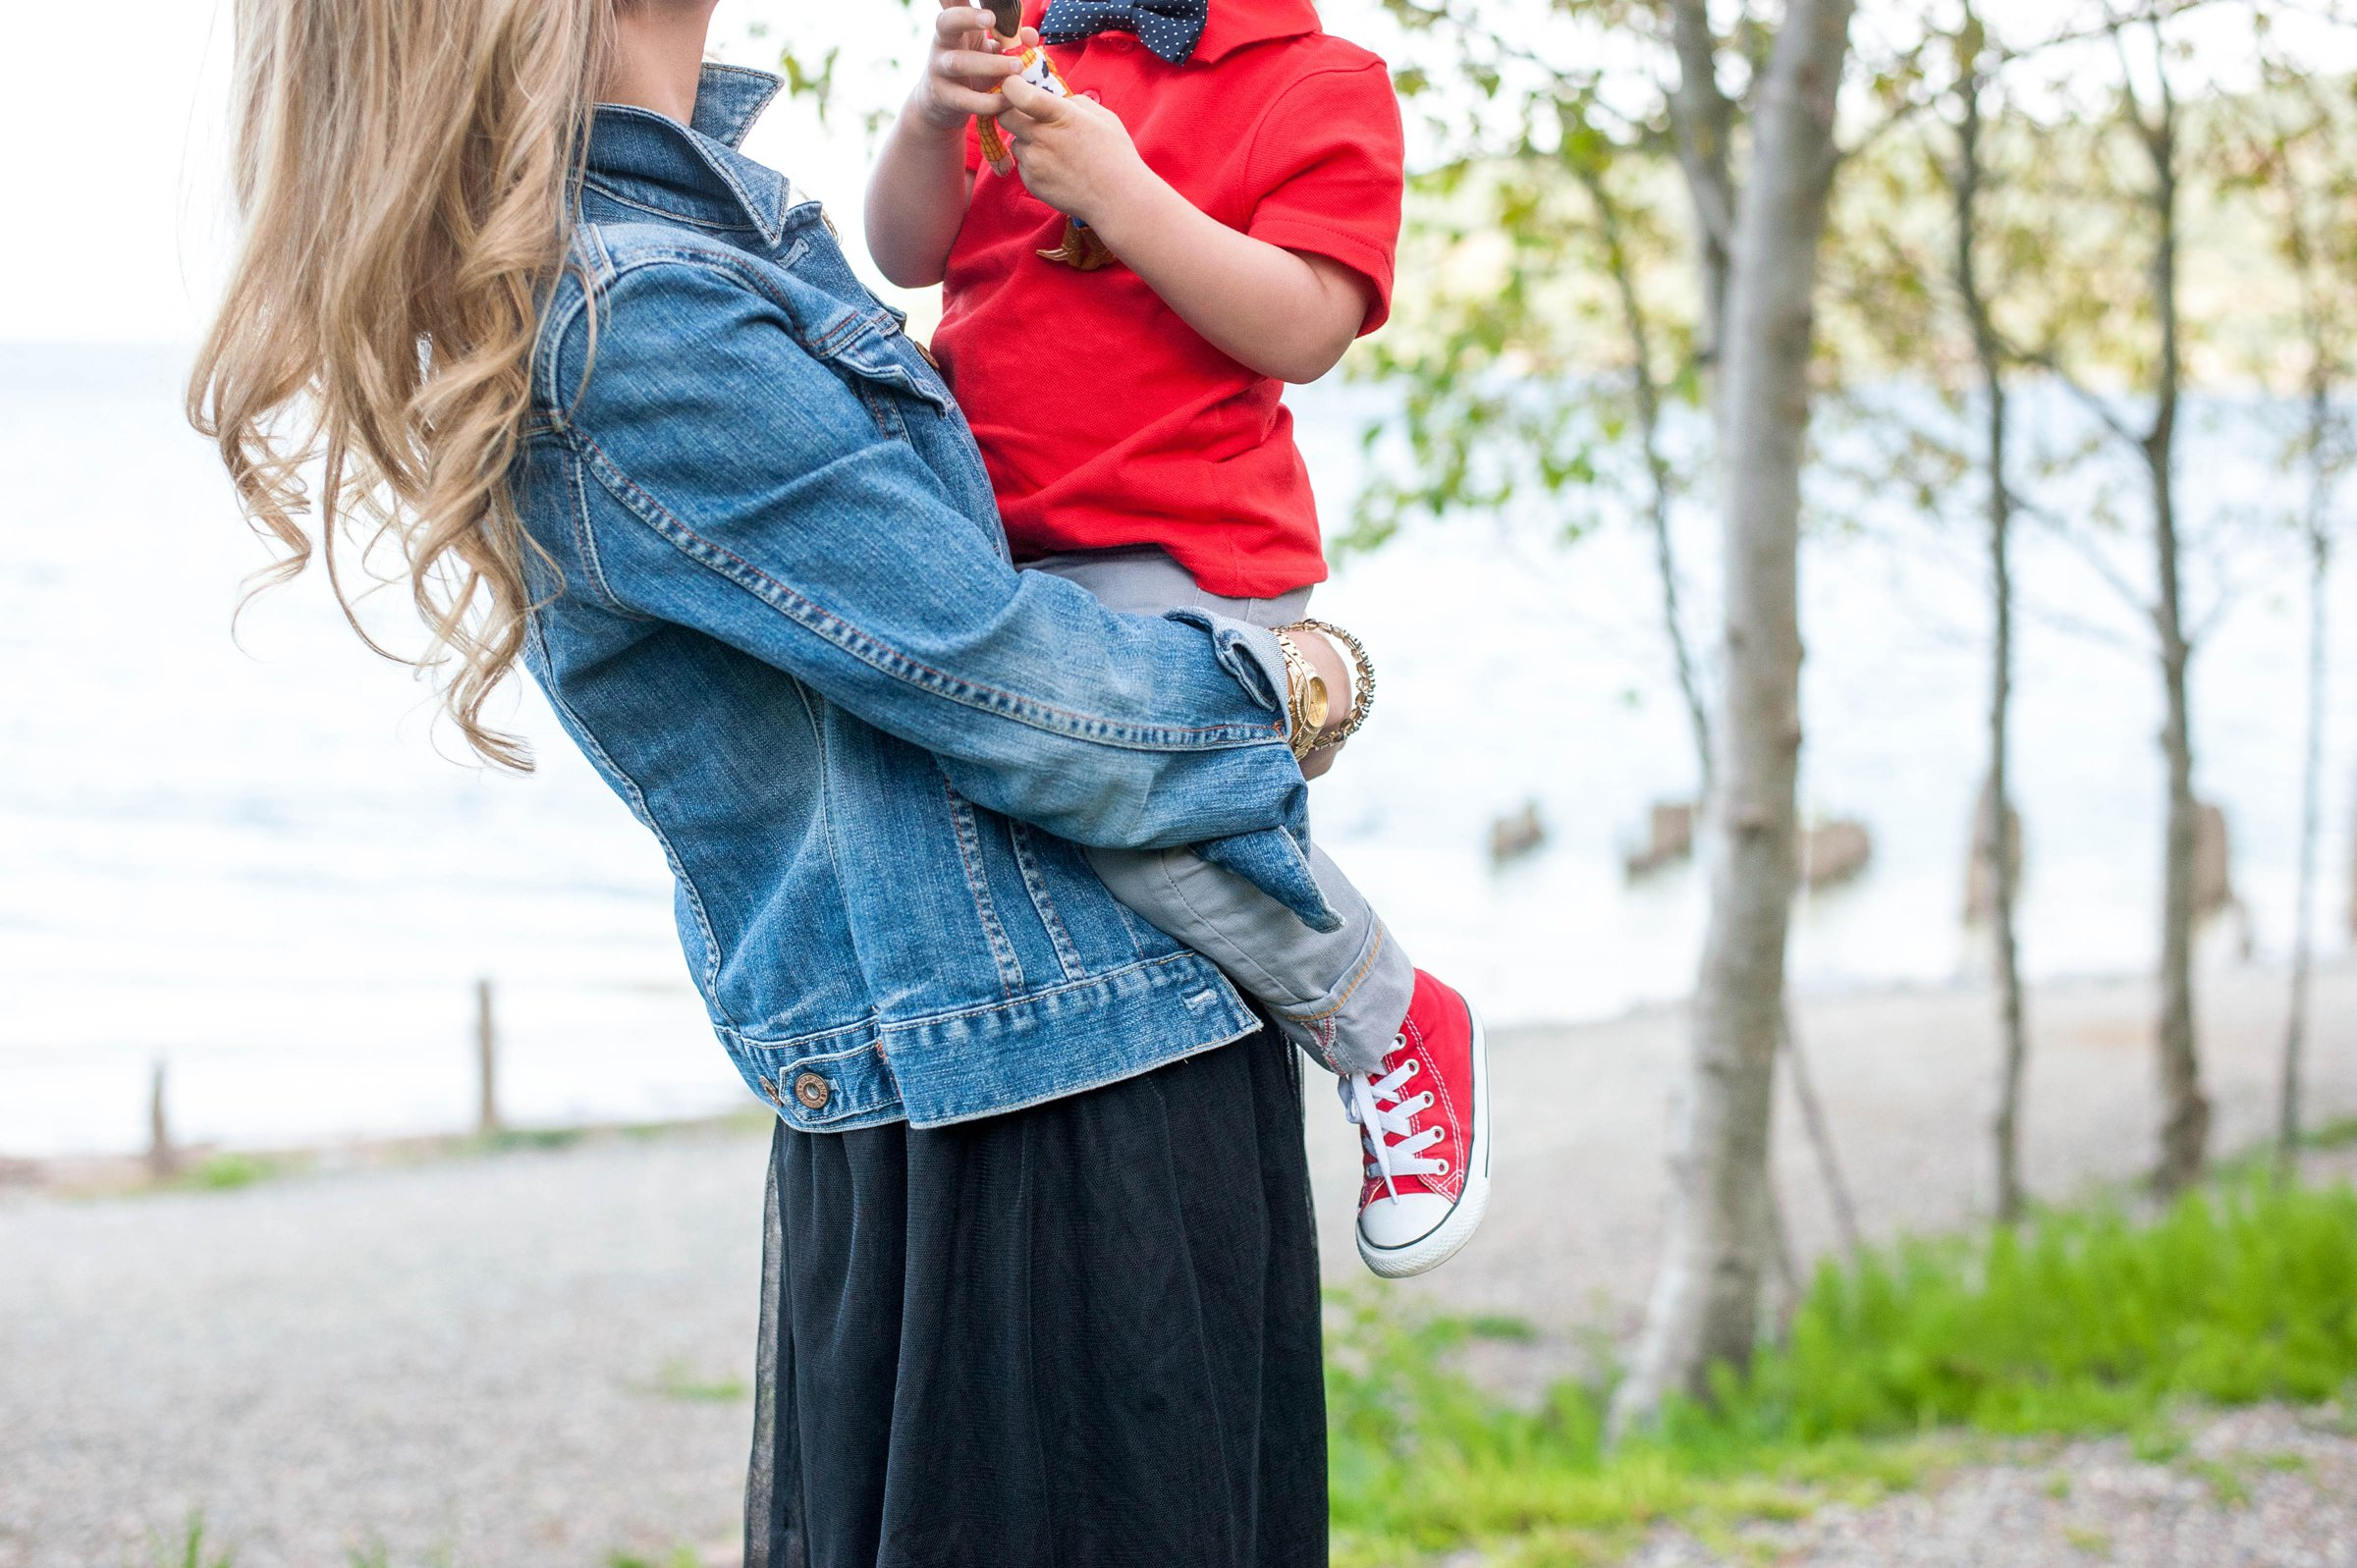 Janel-Gion-Photography-and-Design-Mommy-and-Me-Summer-Photo-Session-Sandpoint-Idaho_0001.jpg